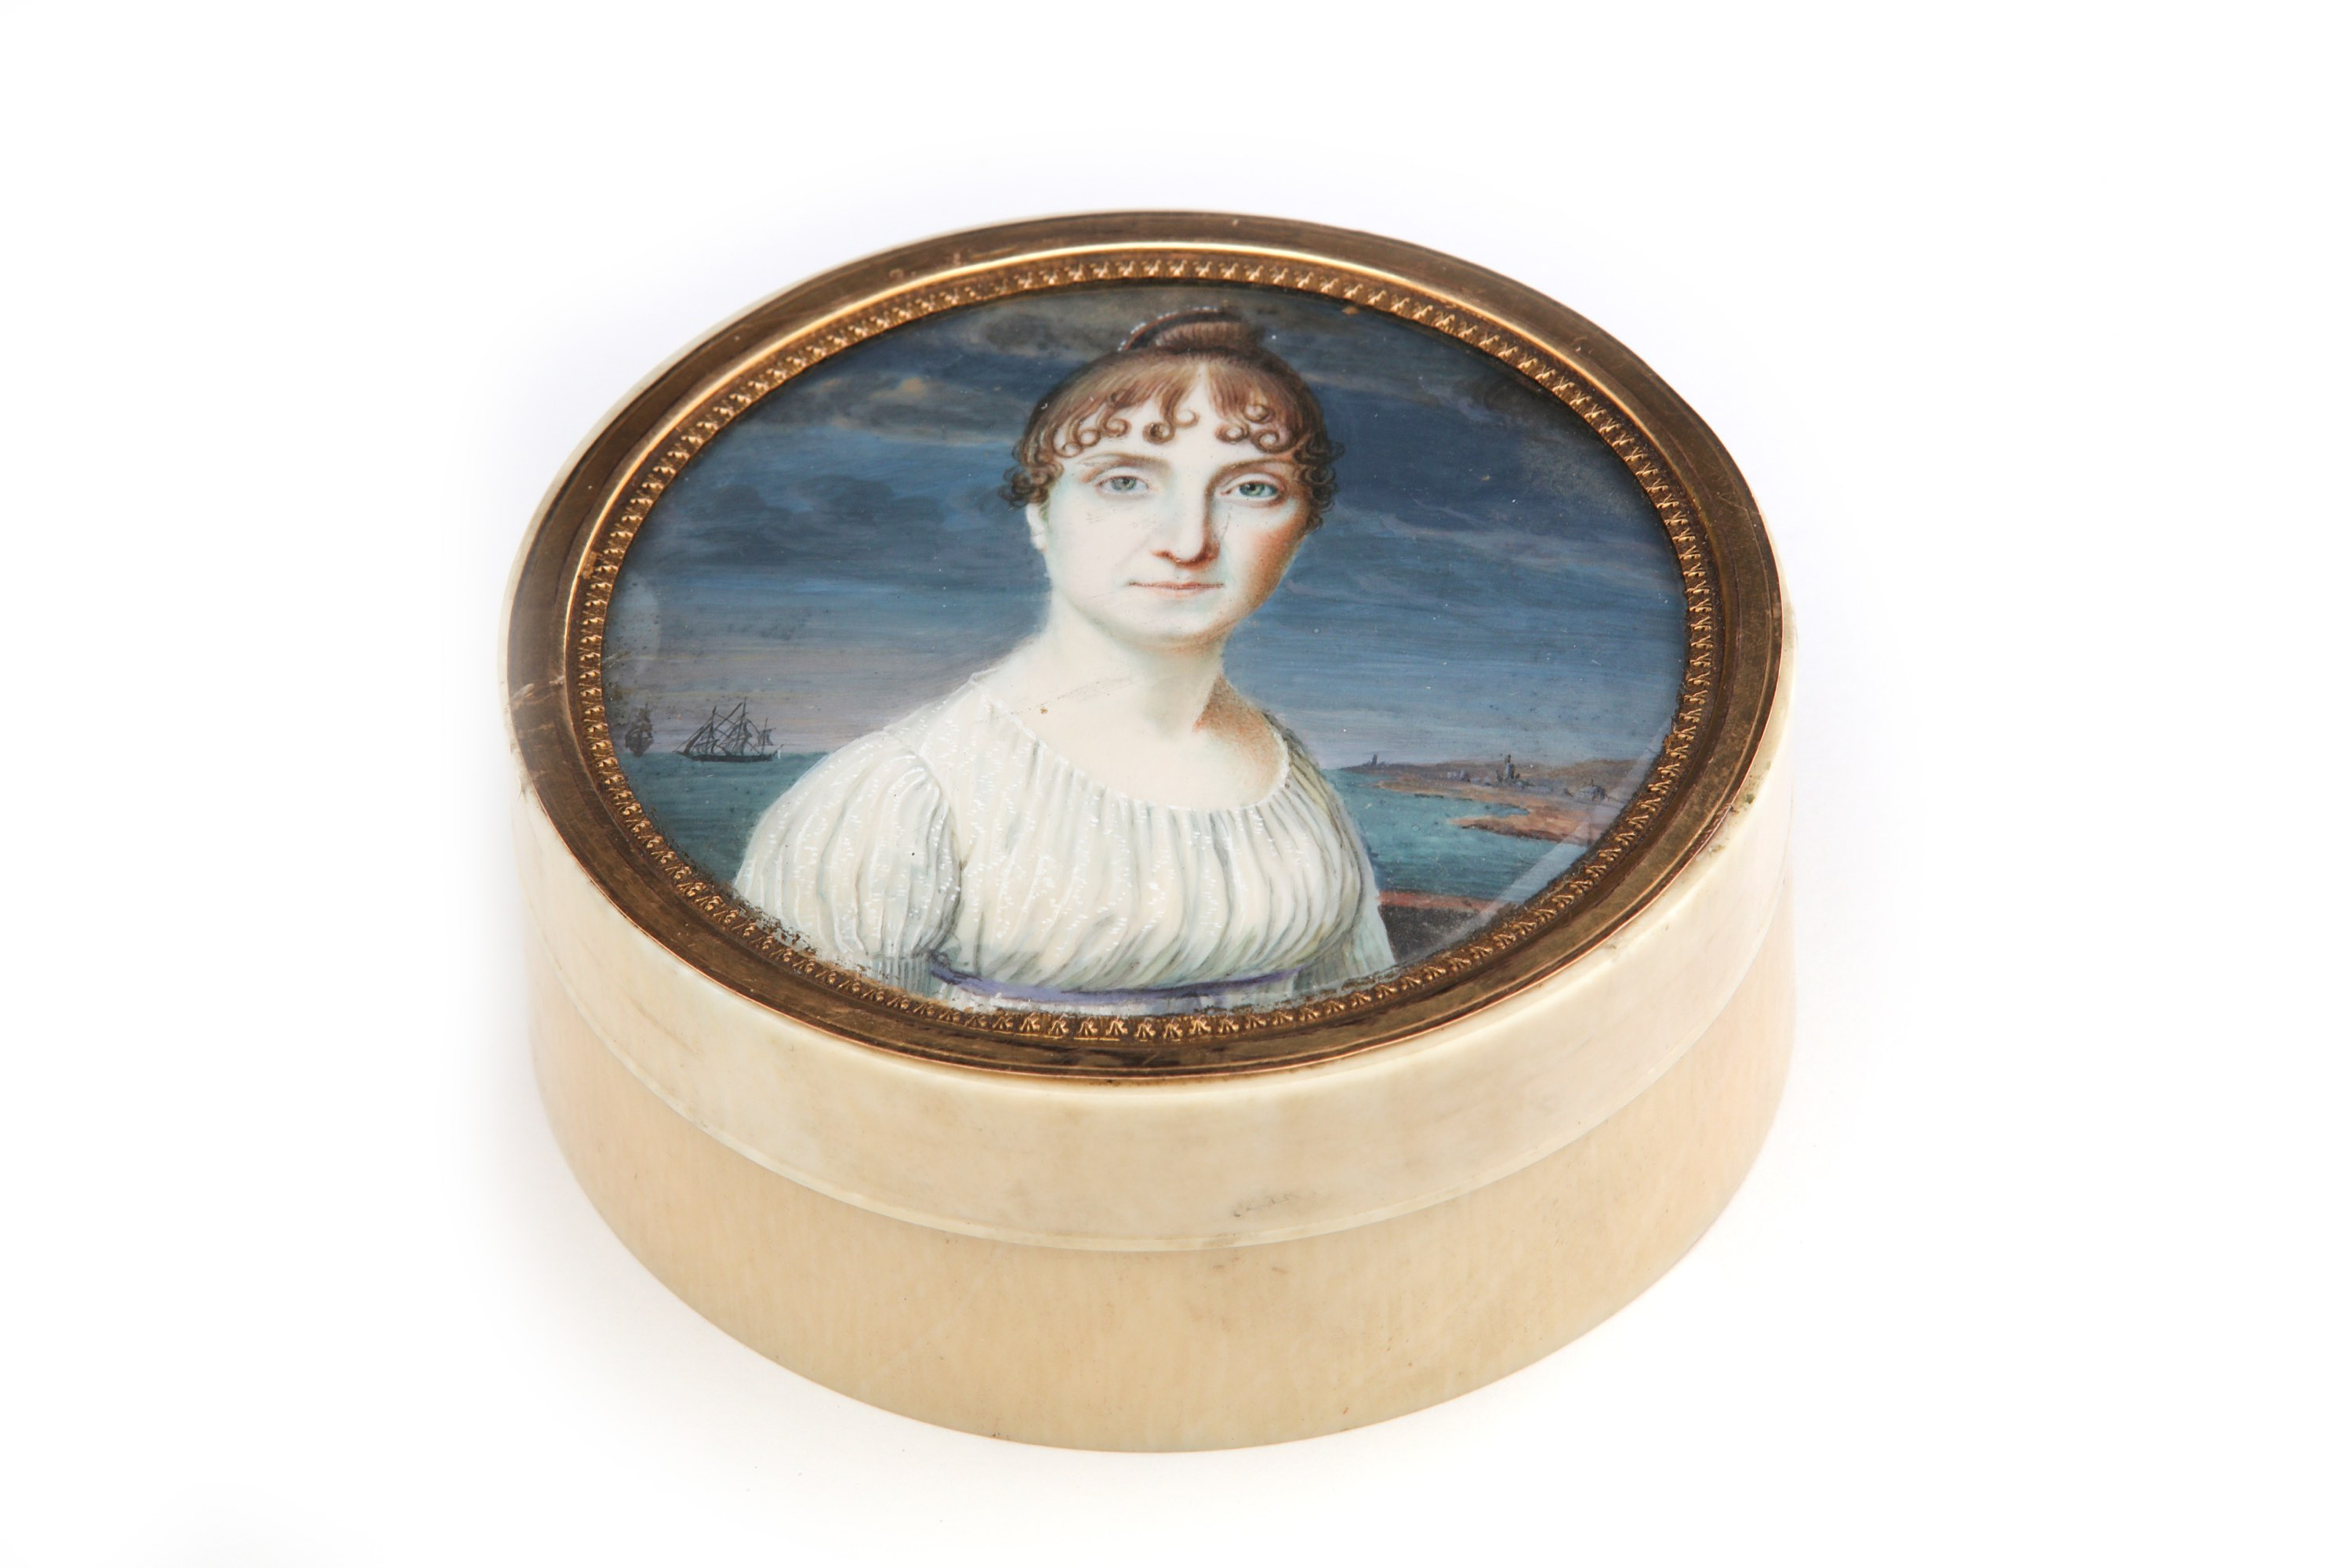 Lot 43 - An early 19th century Continental unmarked gold-mounted ivory portrait miniature snuff box